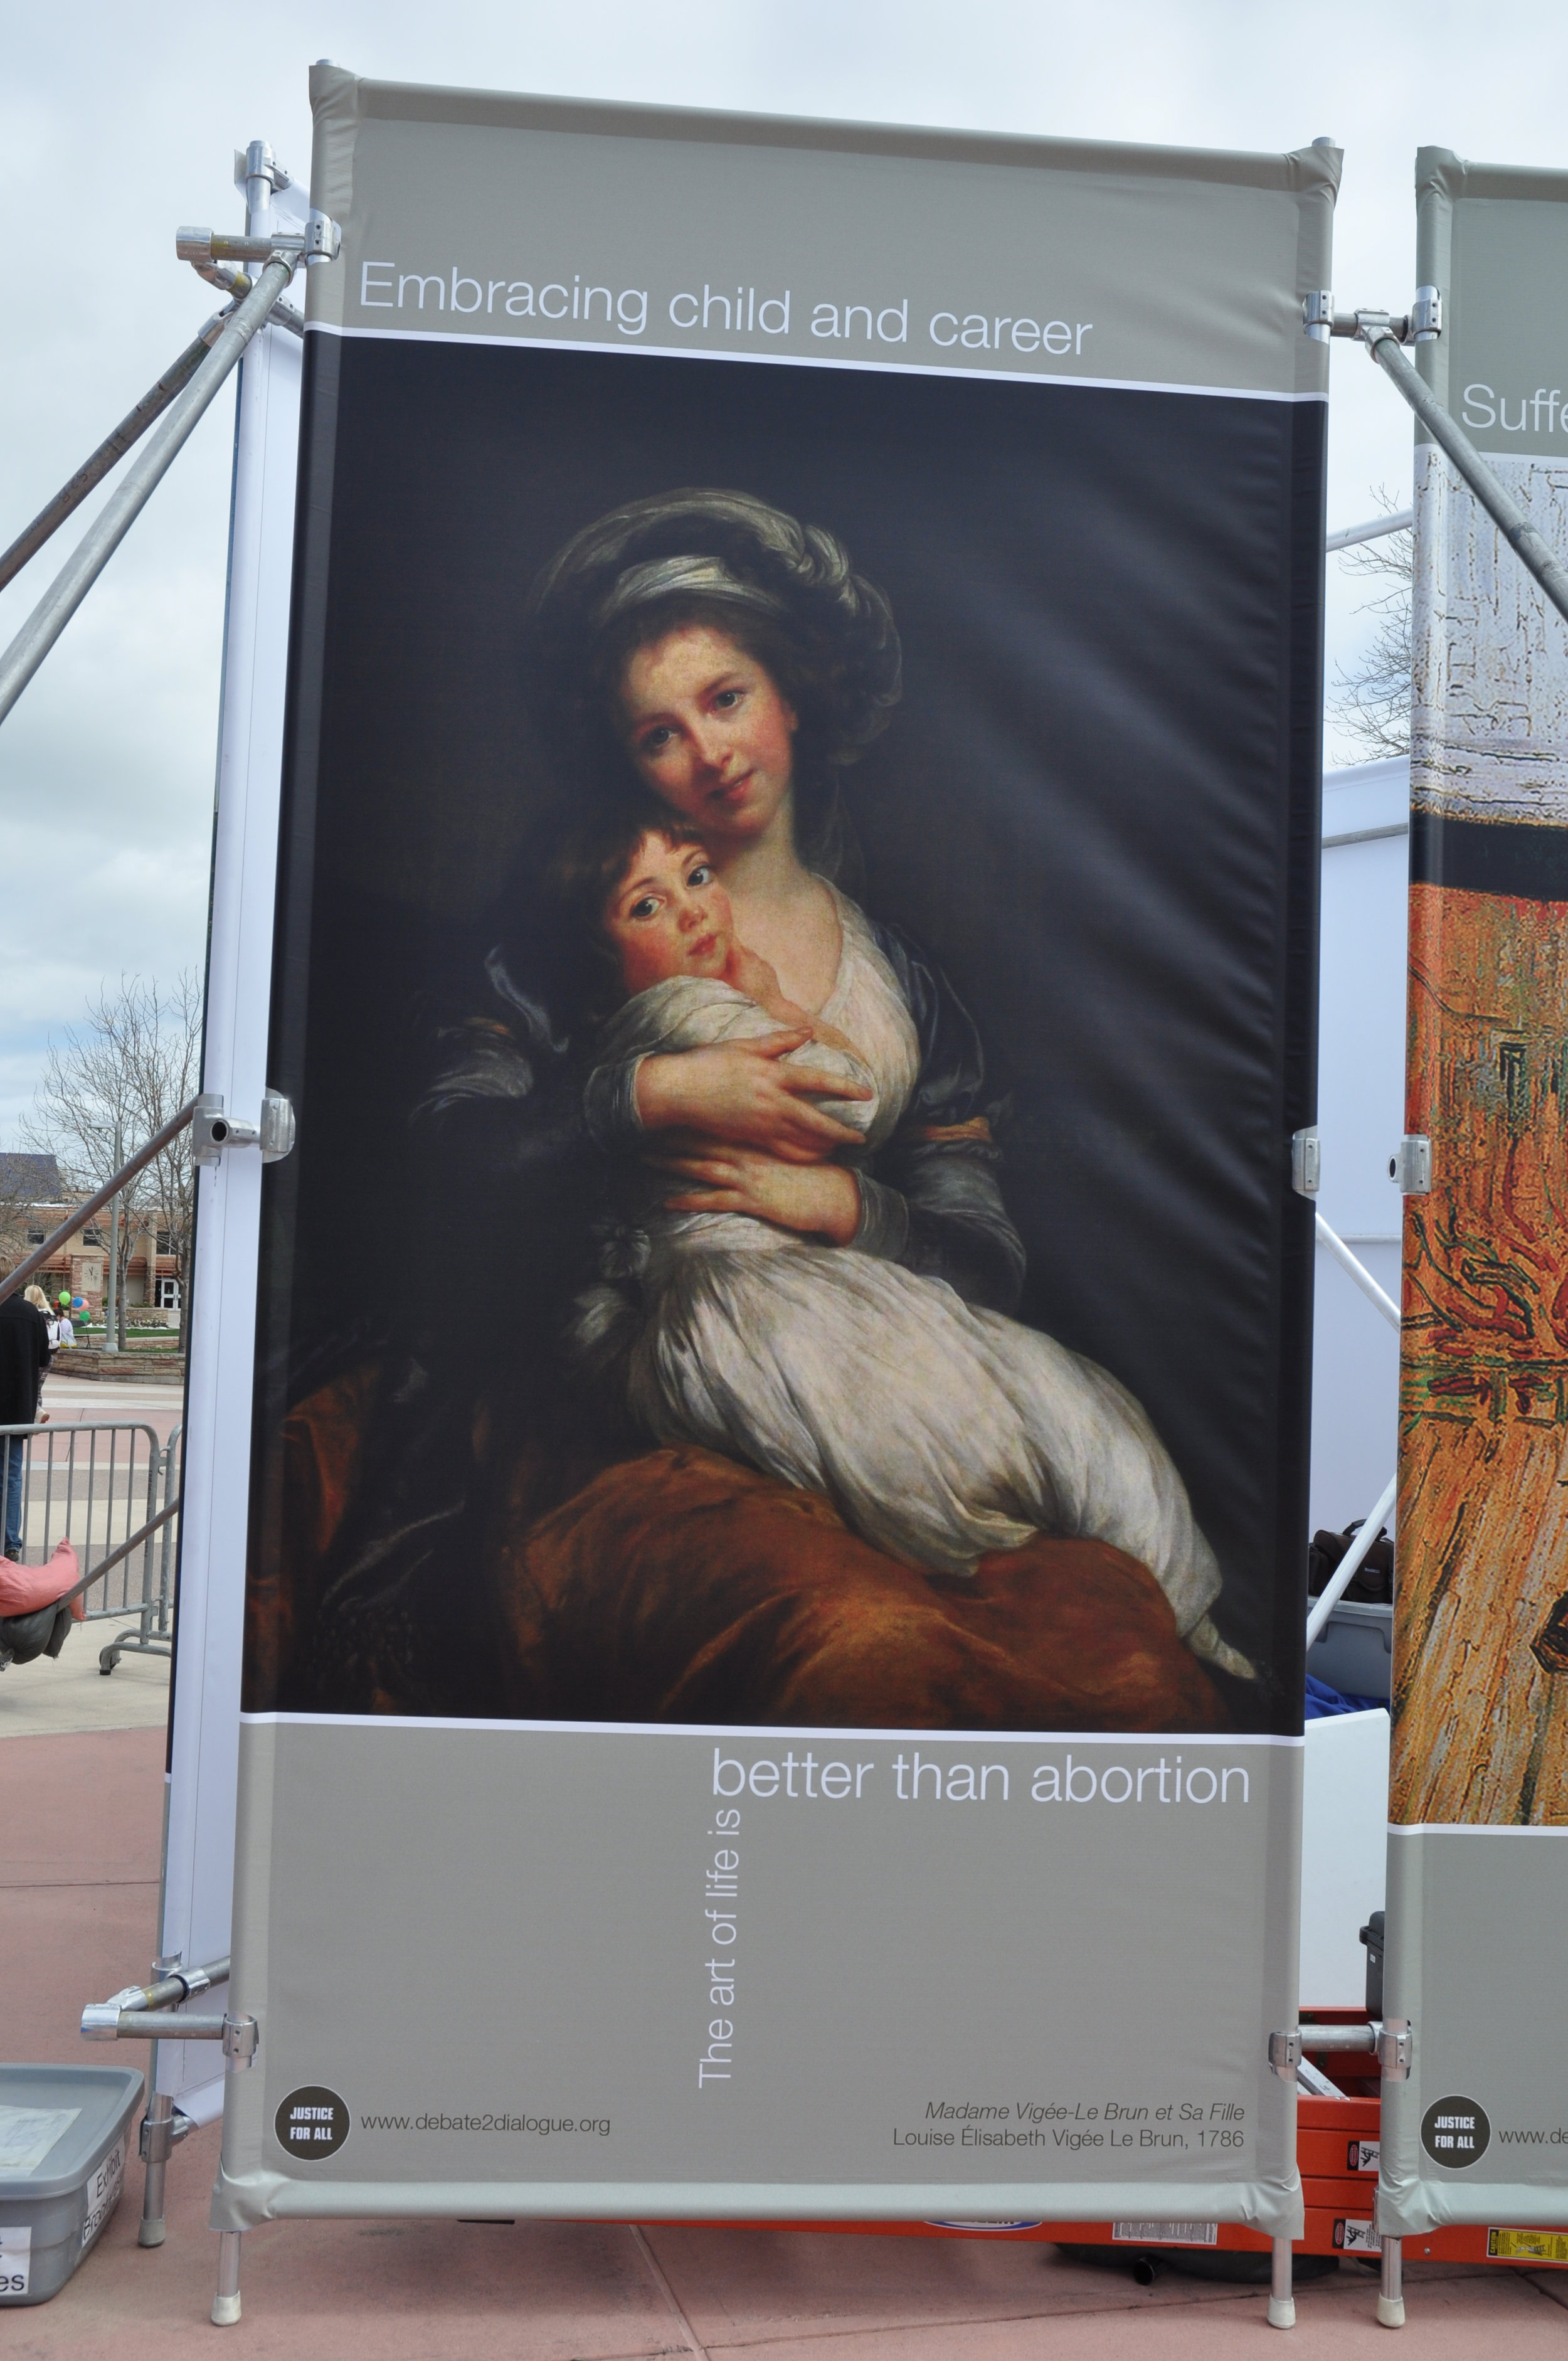 This panel of JFA's  Art of Life Exhibit features  Madame Vigée-Le Brun et sa fille, Jeanne-Lucie, dite Julie by Louise Élisabeth Vigée Le Brun. It's a self-portrait completed in France in 1786. For more commentary, see  this letter . For more on the image, see  the  Art of Life page .